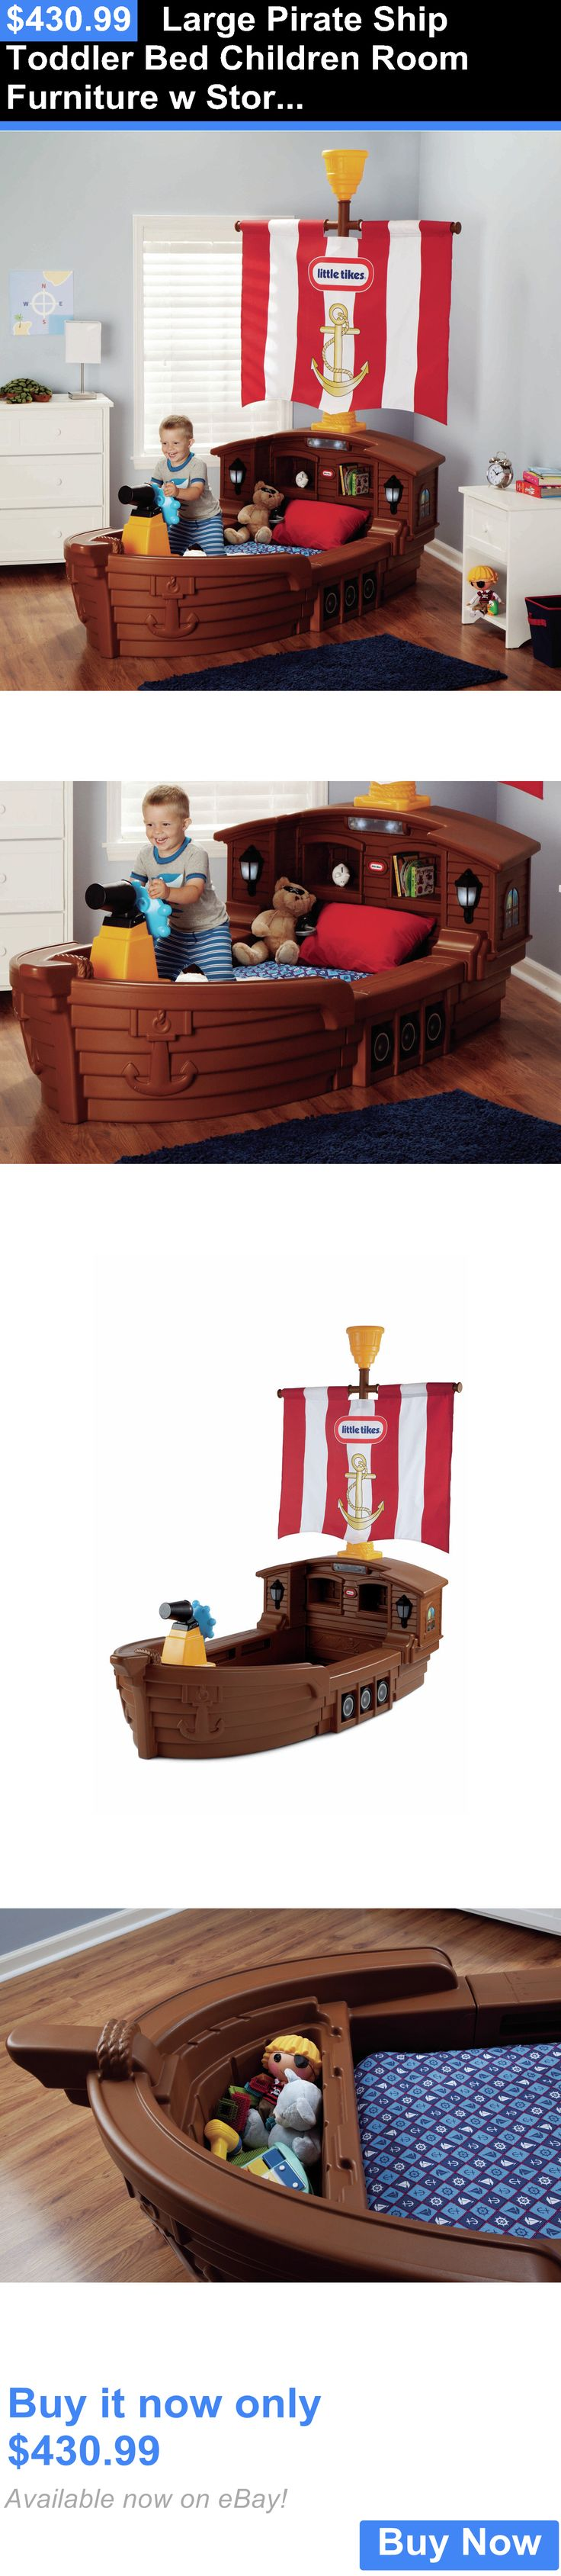 Kids Furniture: Large Pirate Ship Toddler Bed Children Room Furniture W Storage Kids Bedroom Usa BUY IT NOW ONLY: $430.99